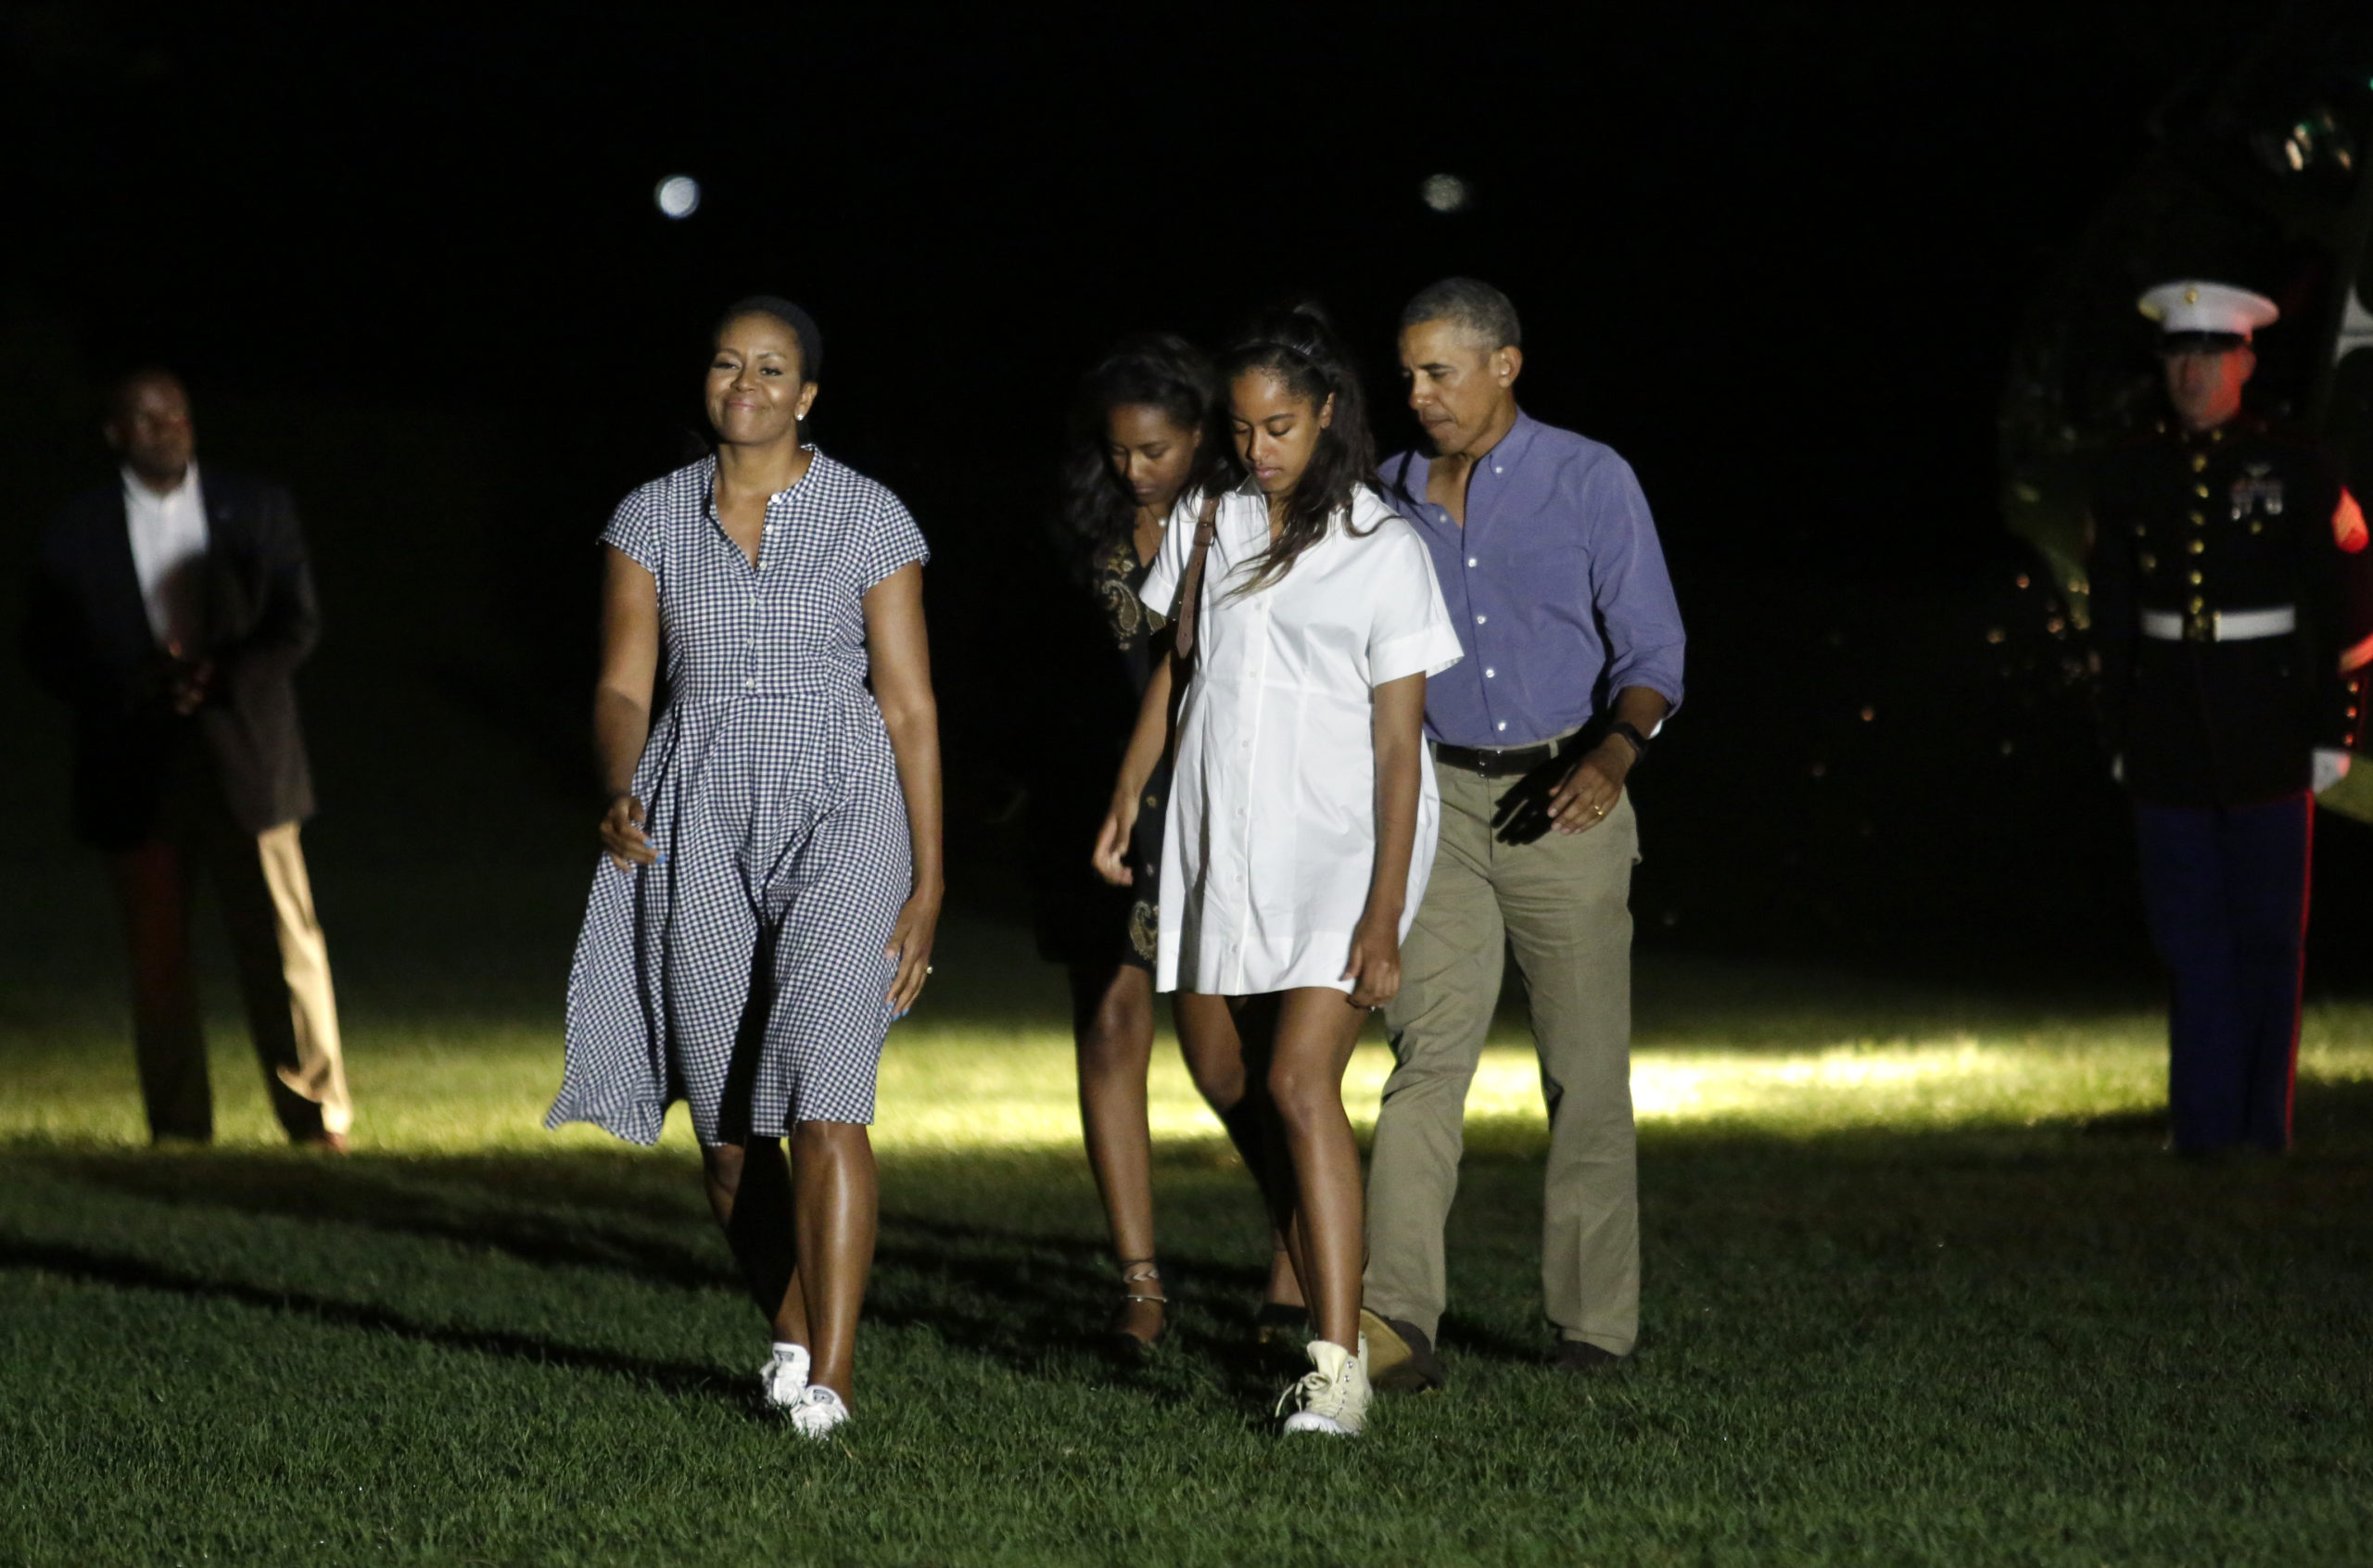 US President Barack Obama waves as he walks with First lady Michelle Obama (L) and their daughters Malia (2nd-R) and Sasha (3rd-R) on the South Lawn of the White House in Washington upon their return from a summer vacation in Martha's Vineyard, Massachusetts on August 21, 2016. / AFP / YURI GRIPAS (Photo credit should read YURI GRIPAS/AFP via Getty Images)